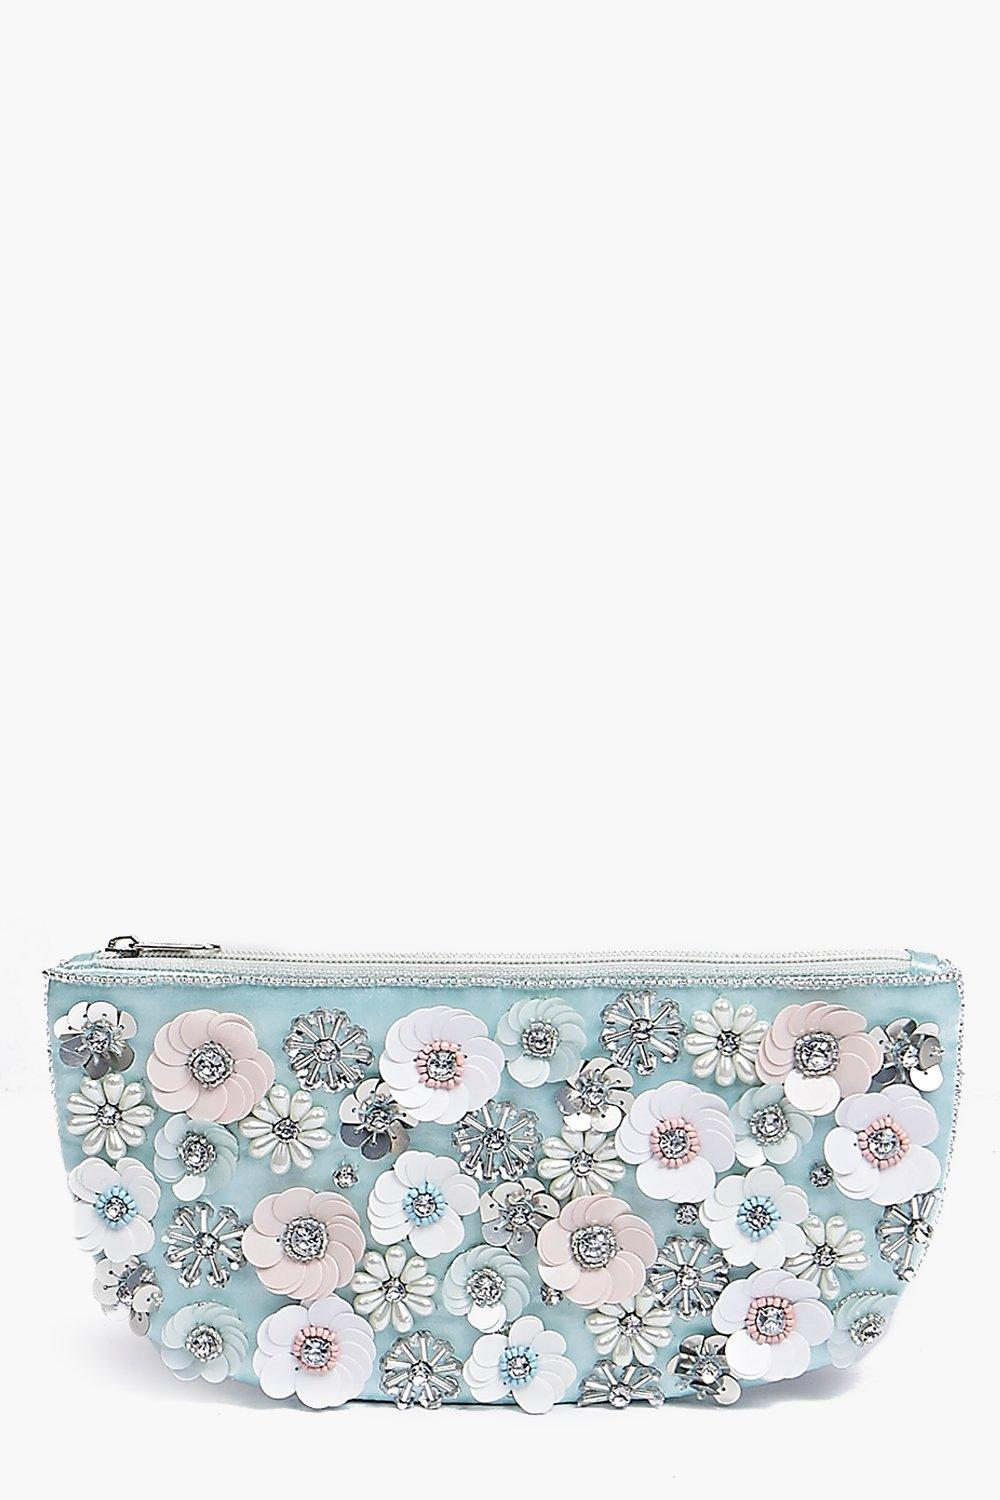 Boutique 3D Floral Embellished Clutch Bag